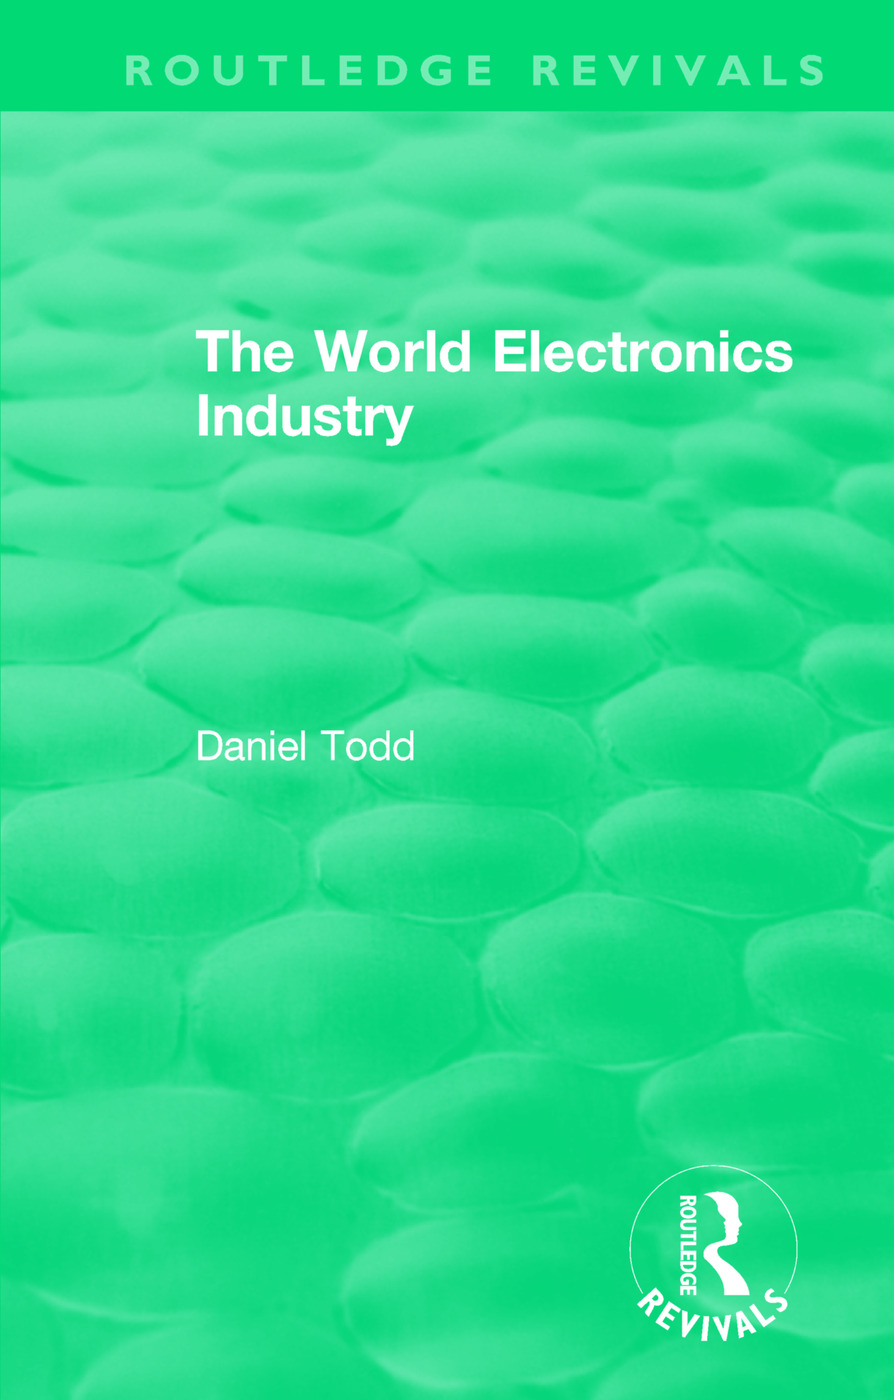 Routledge Revivals: The World Electronics Industry (1990)